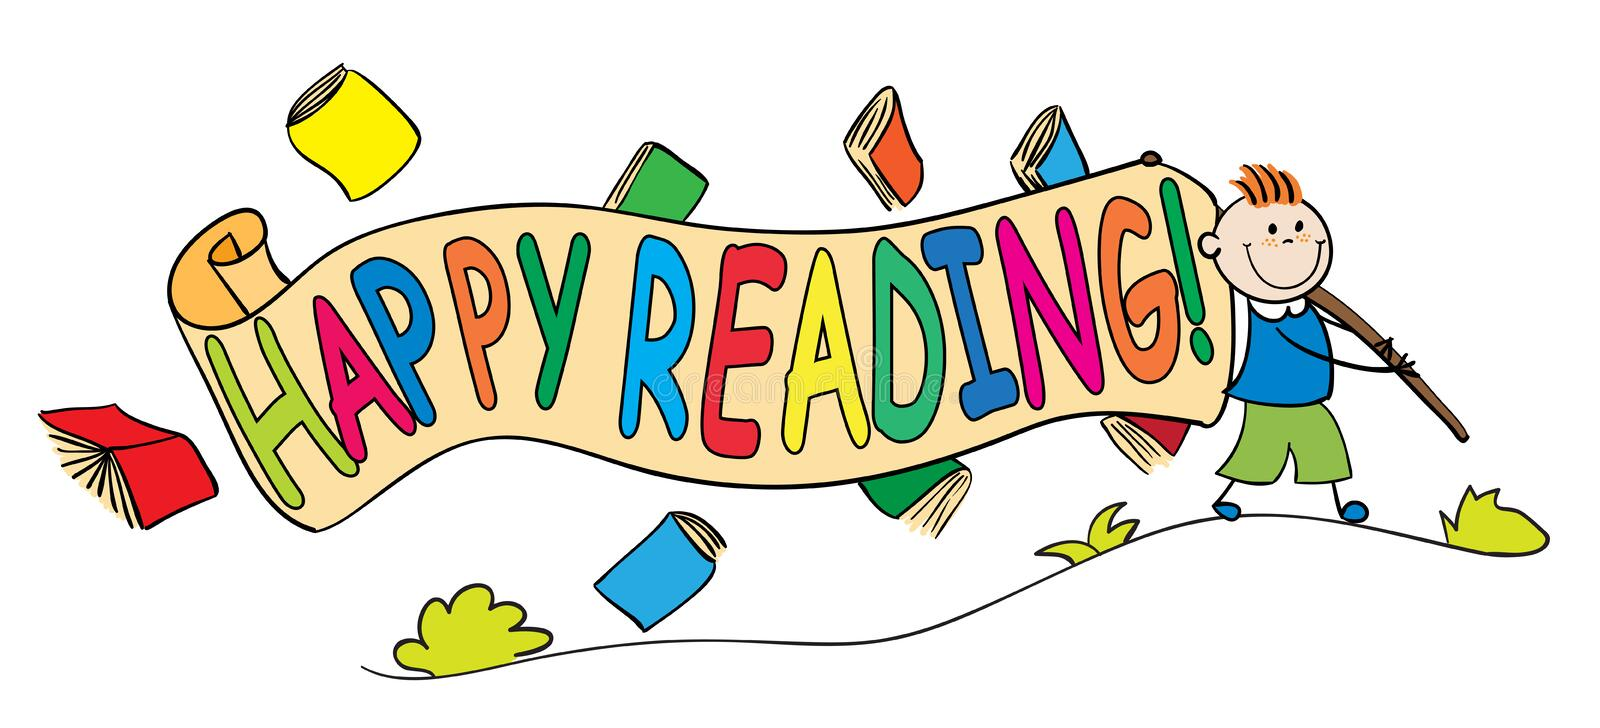 Image result for happy reading